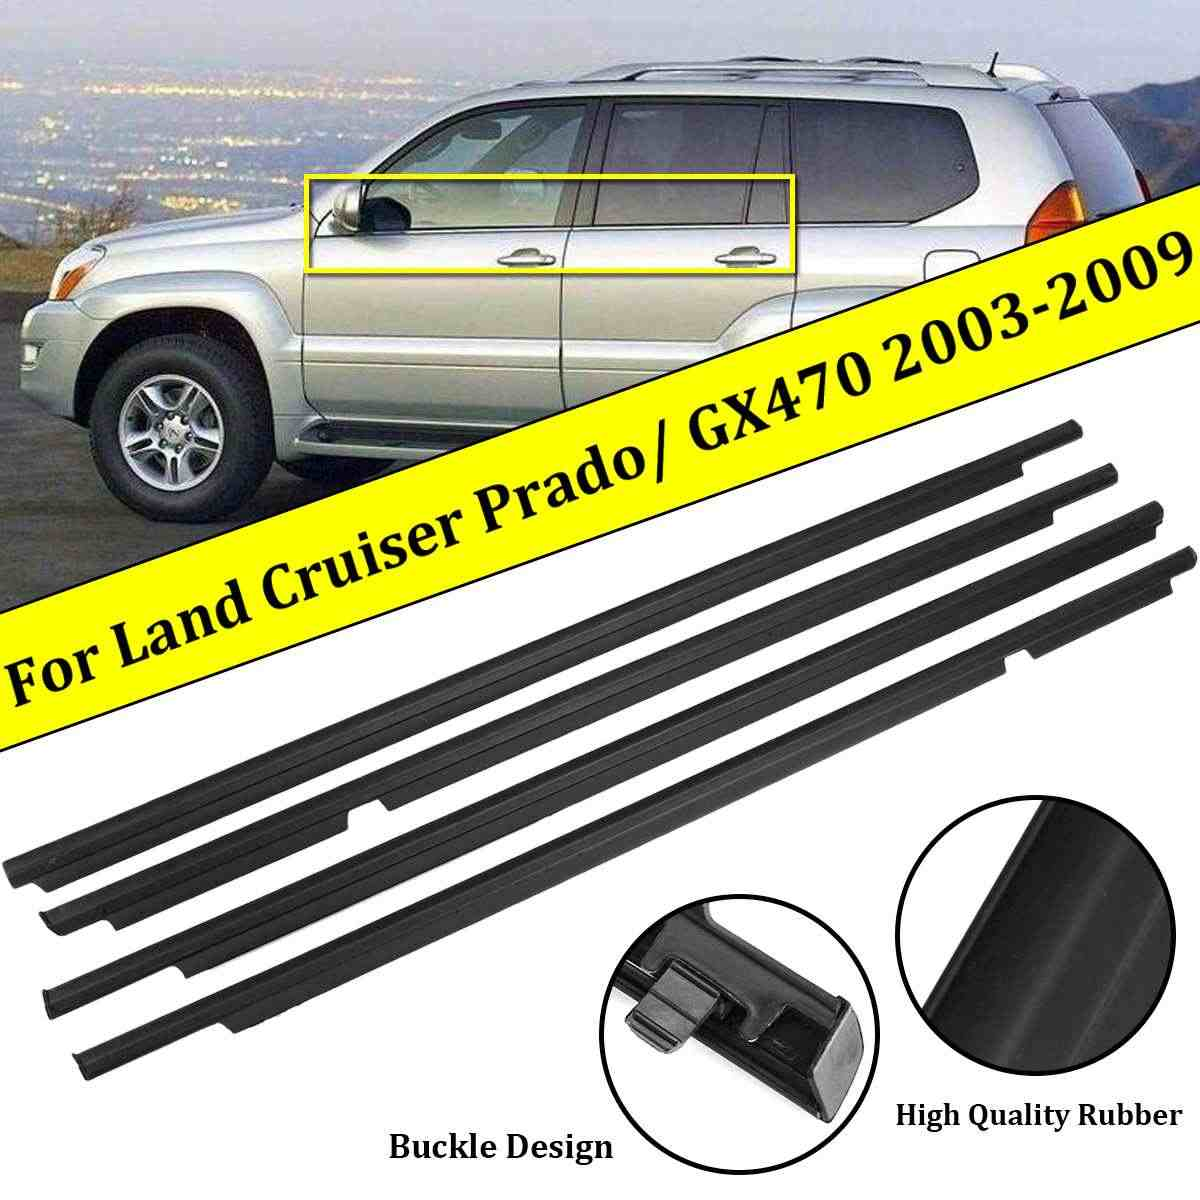 4 pcs weatherstrips 도어 벨트 인감 날씨 스트립 for toyota land cruiser 120 prado 2003-2009 lexus gx470 2003-2009